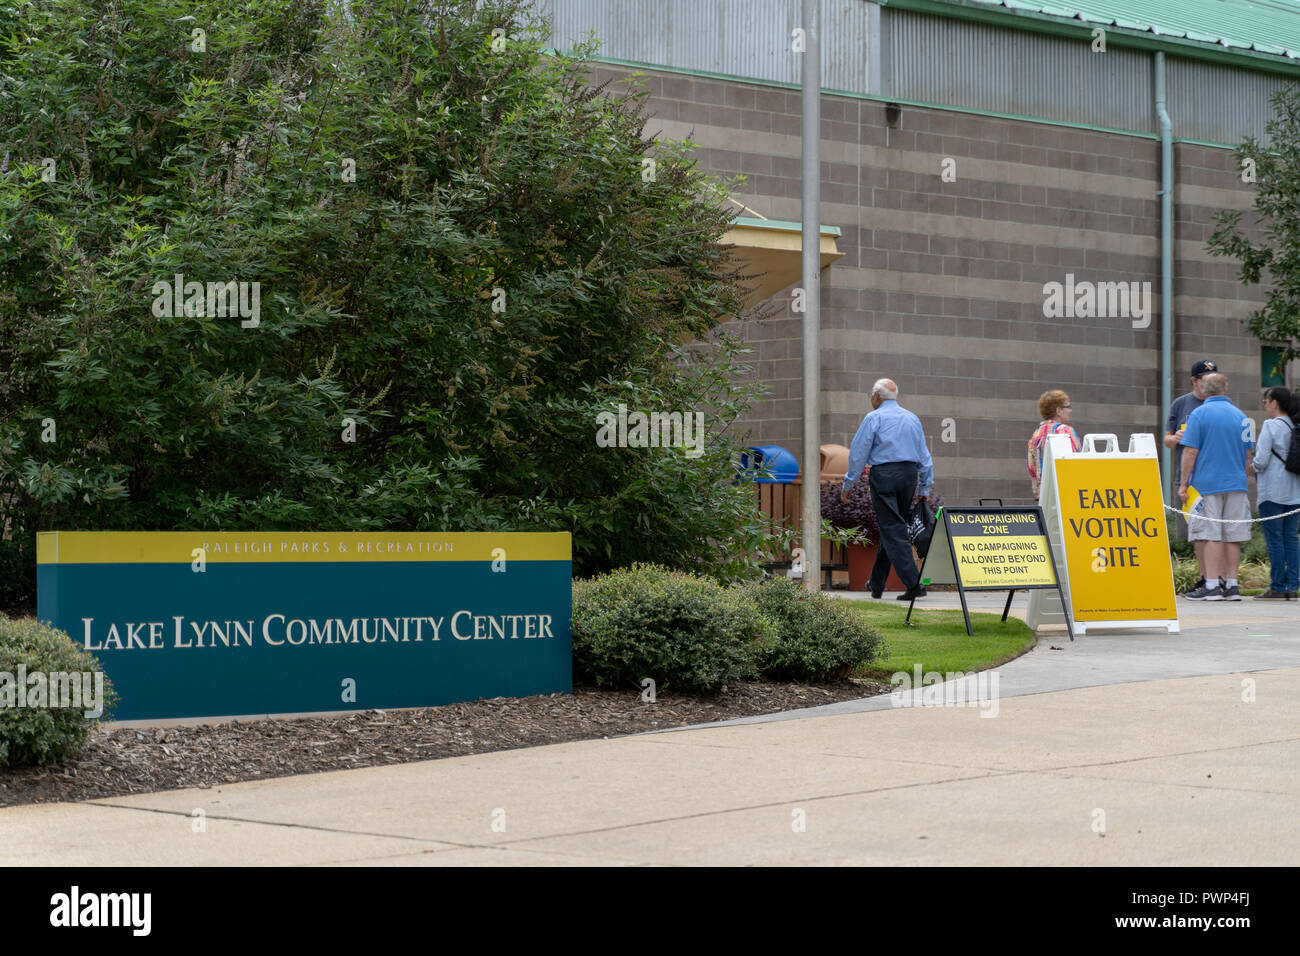 Raleigh, North Carolina, USA. 17th Oct, 2018.  Early voting begins for 2018 midterm elections, Lake Lynn Community Center. One-Stop early voting site in Raleigh. Credit: Michael Reilly/Alamy Live News - Stock Image